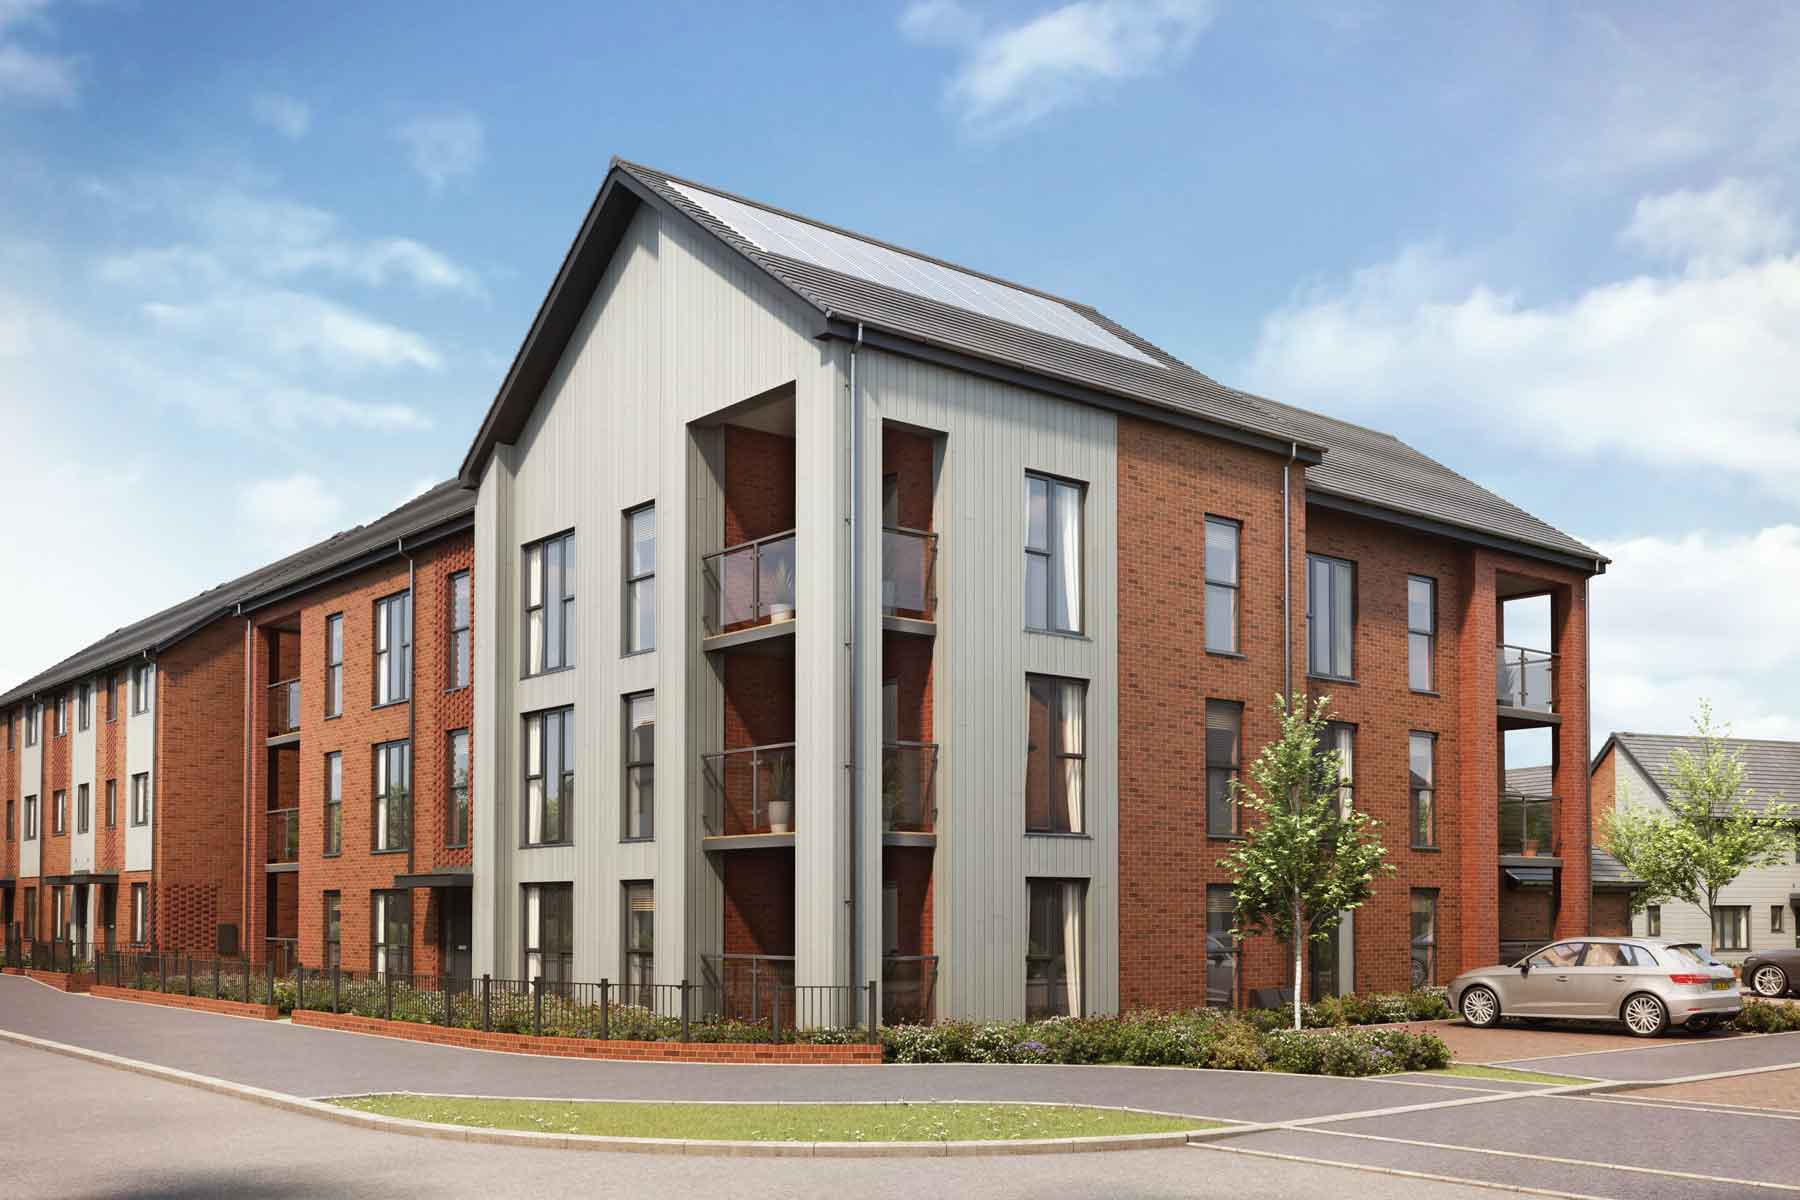 Artist's impression of Hawfinch House